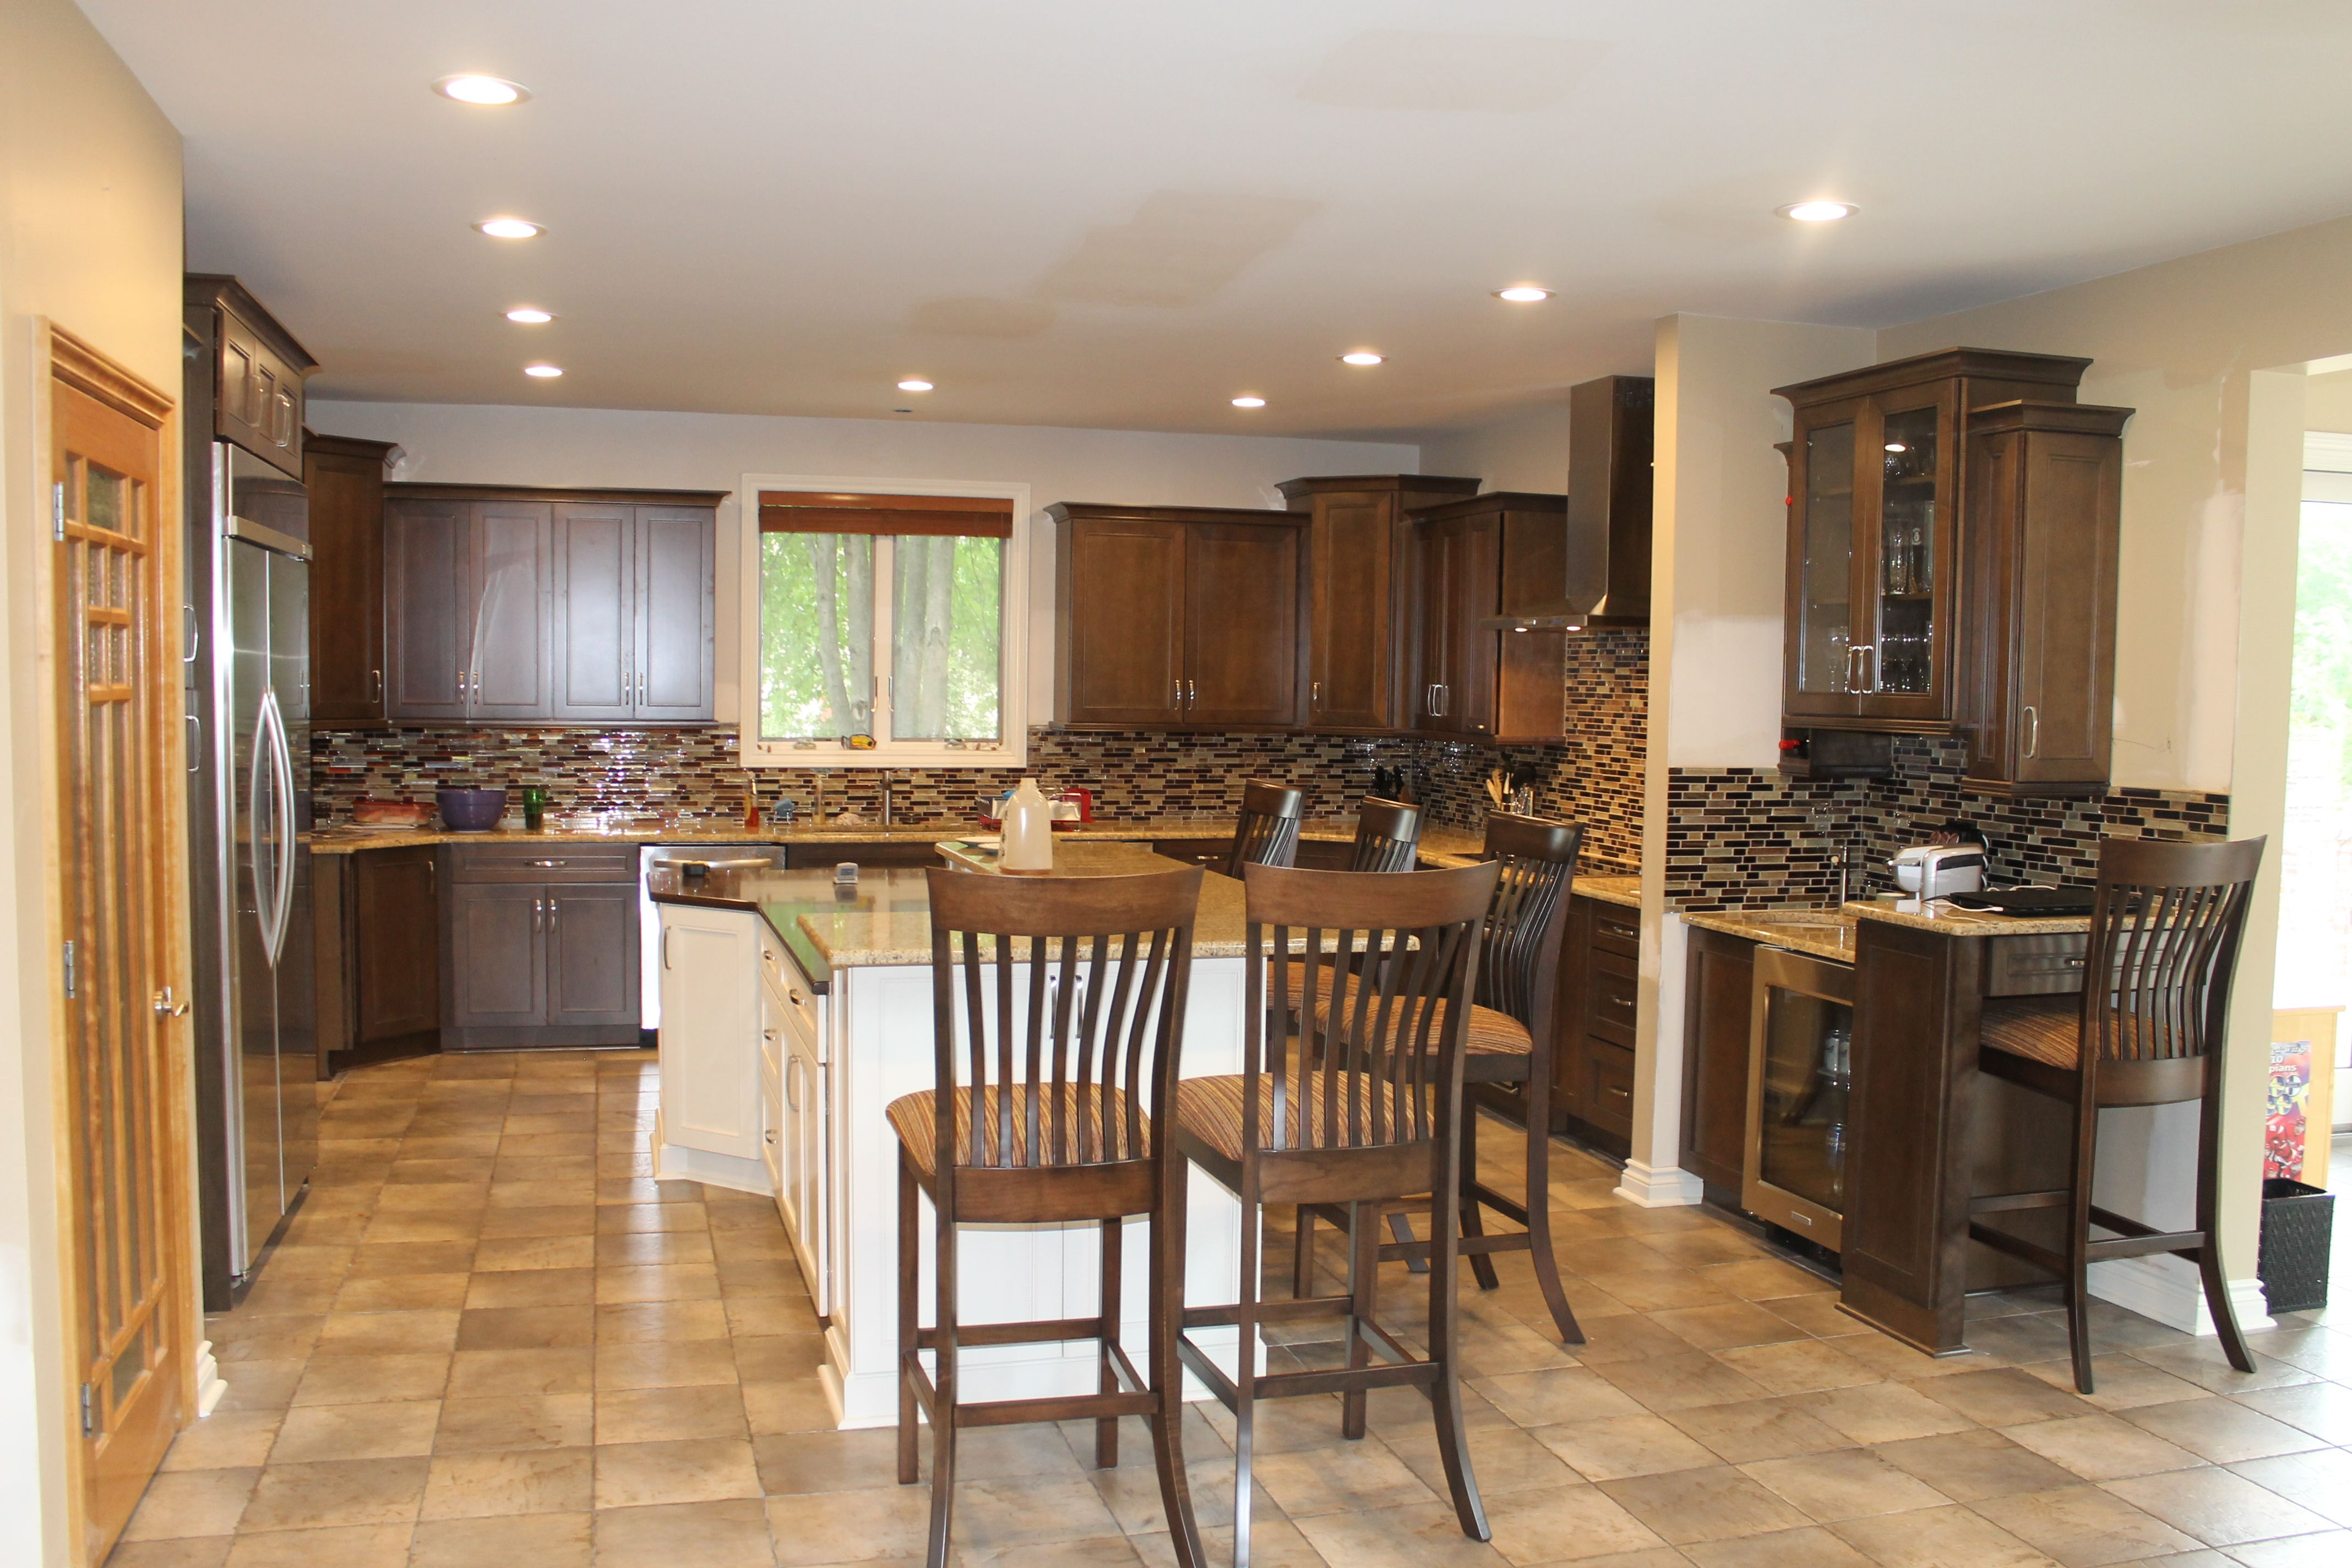 Medium Maple Cabinets with light Granite countertops and ... on Pictures Of Granite Countertops With Maple Cabinets  id=29923